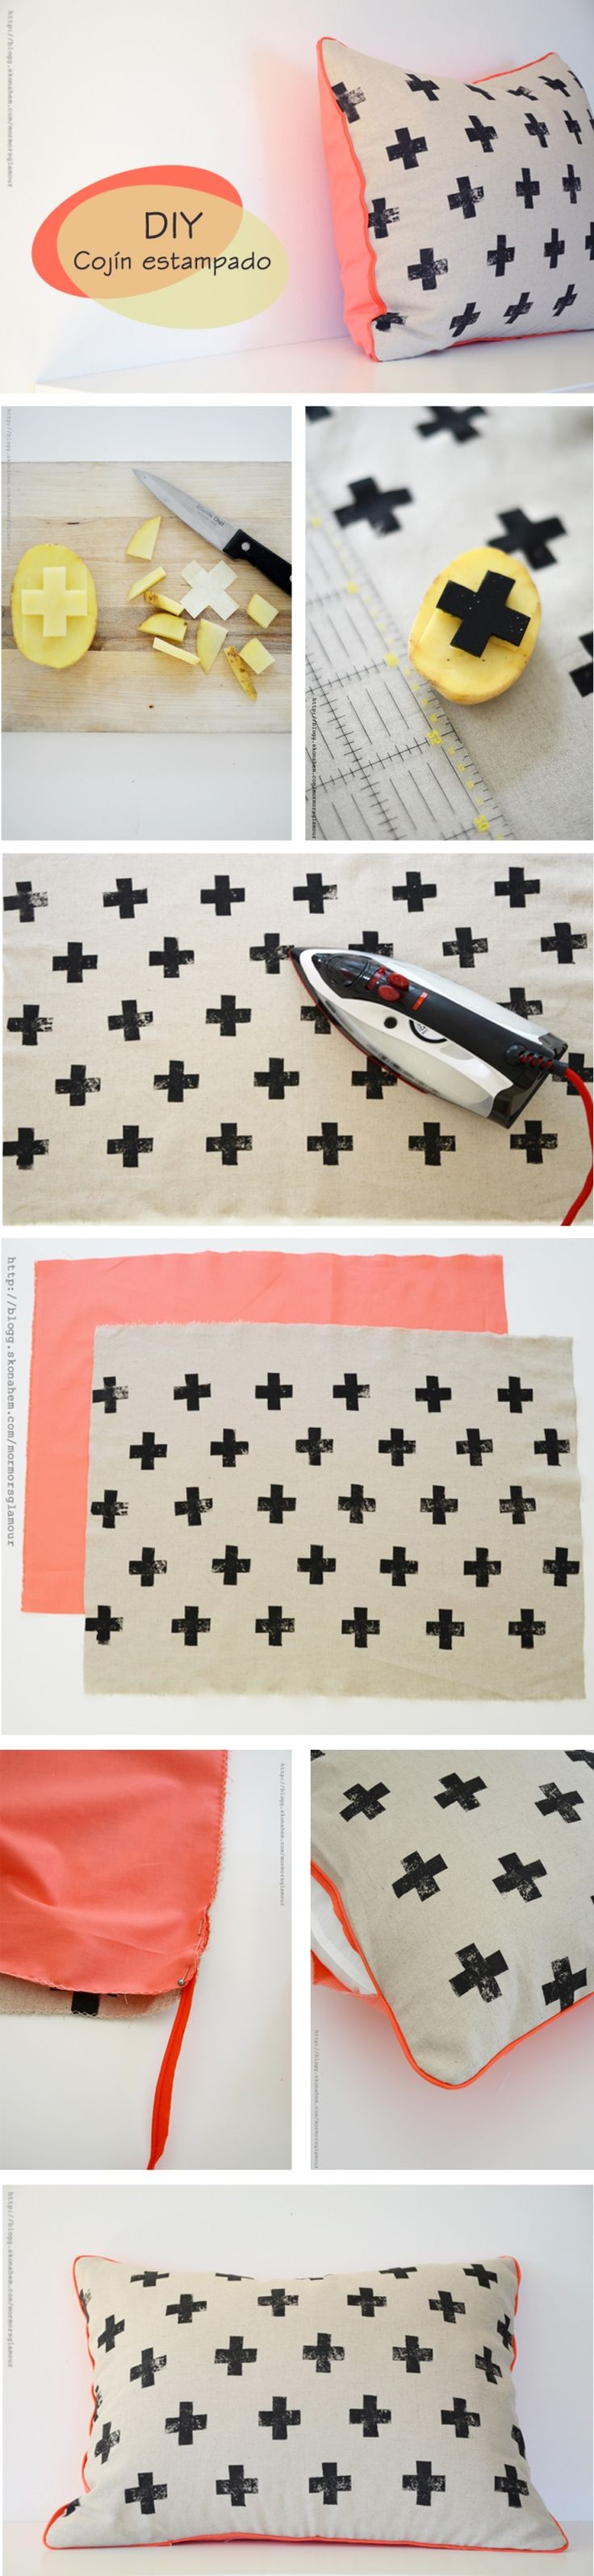 DIY potato stamp pillow.